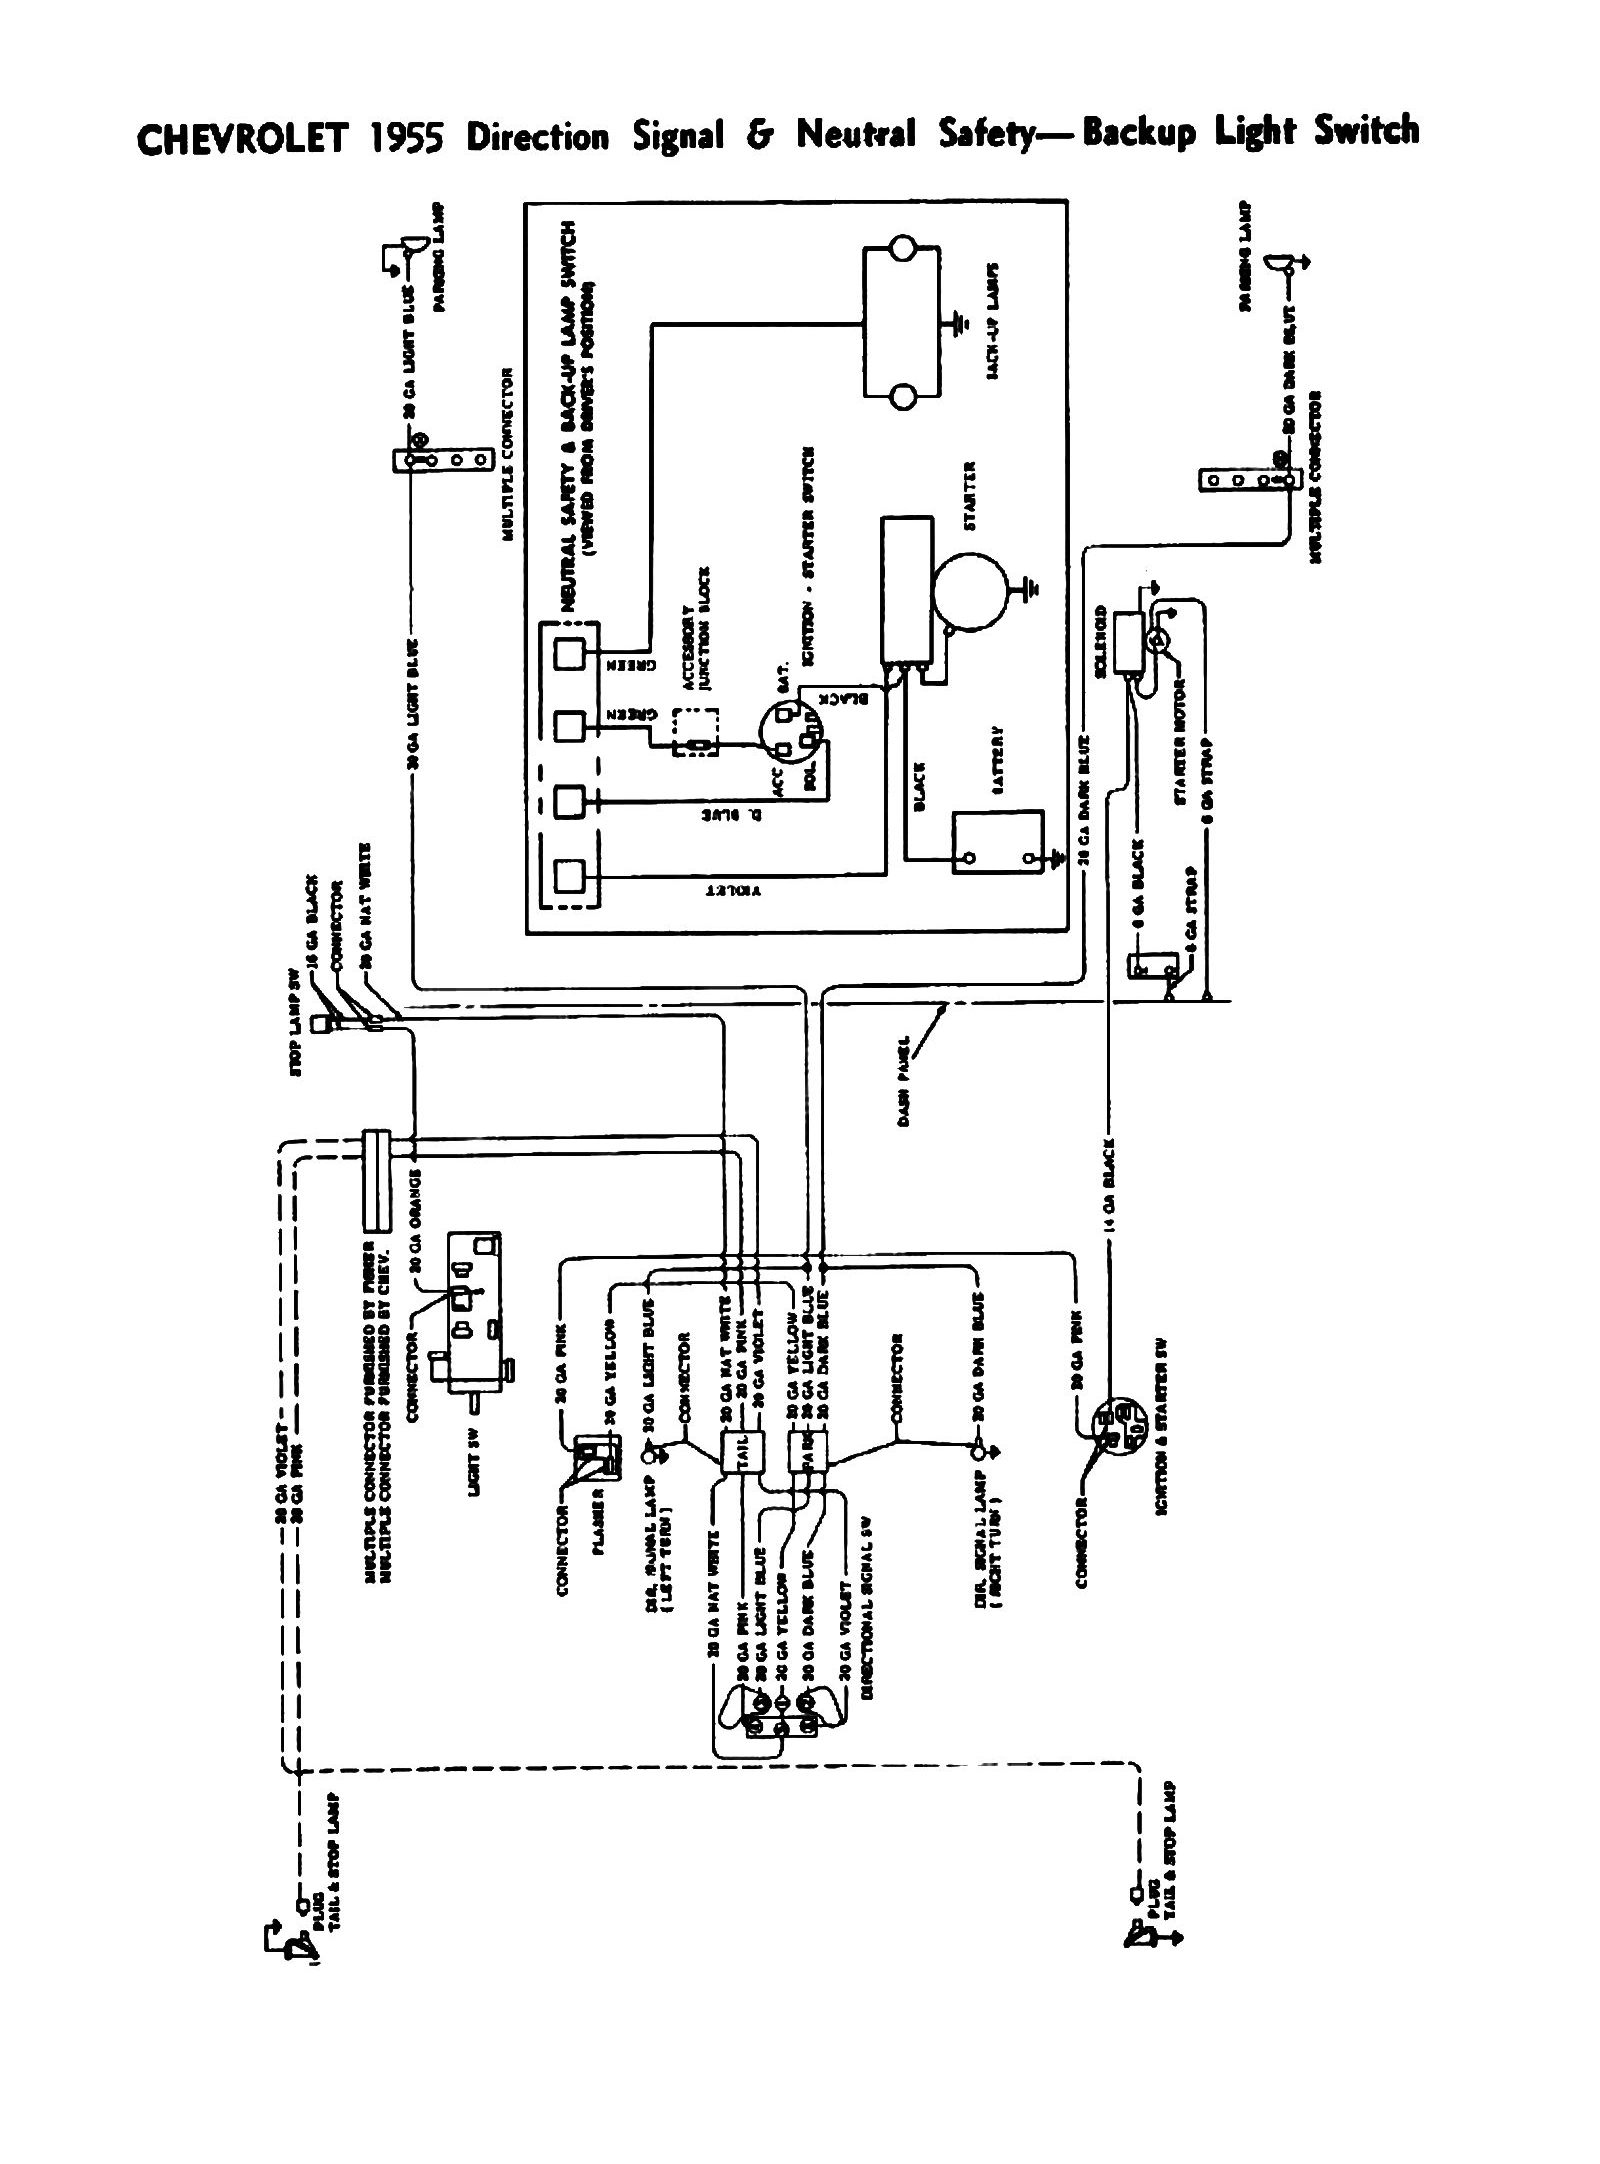 1954 dodge truck wiring diagram wiring diagram 1951 dodge truck wiring diagrams